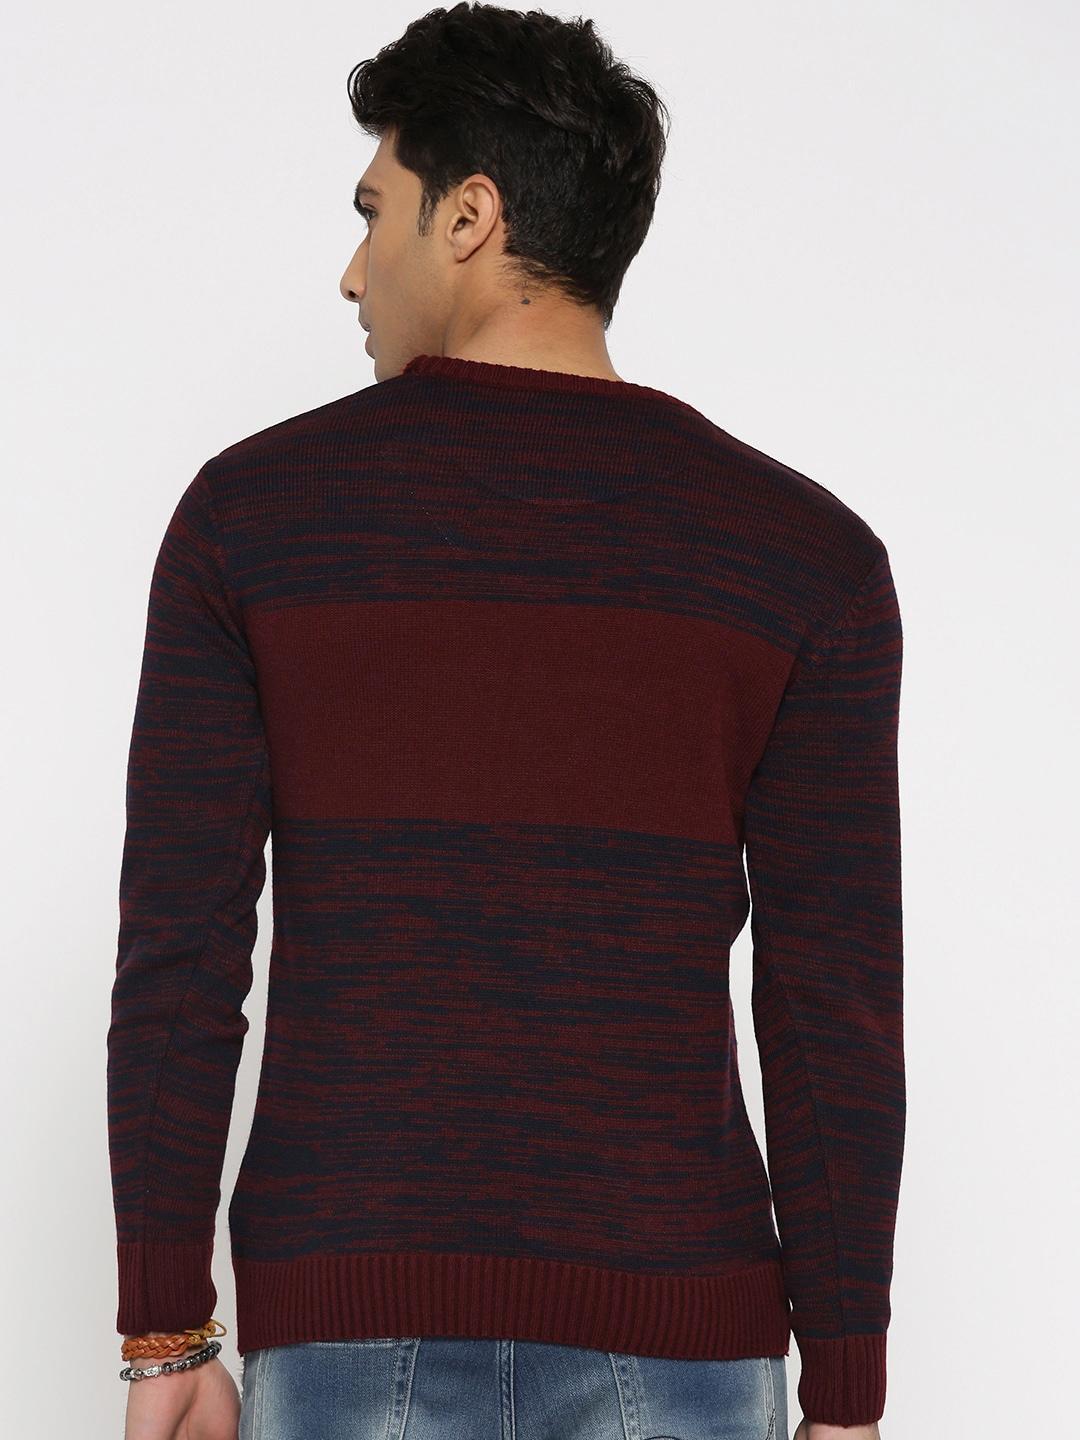 Sweaters for Men - Buy Mens Sweaters, Woollen Sweaters Online - Myntra